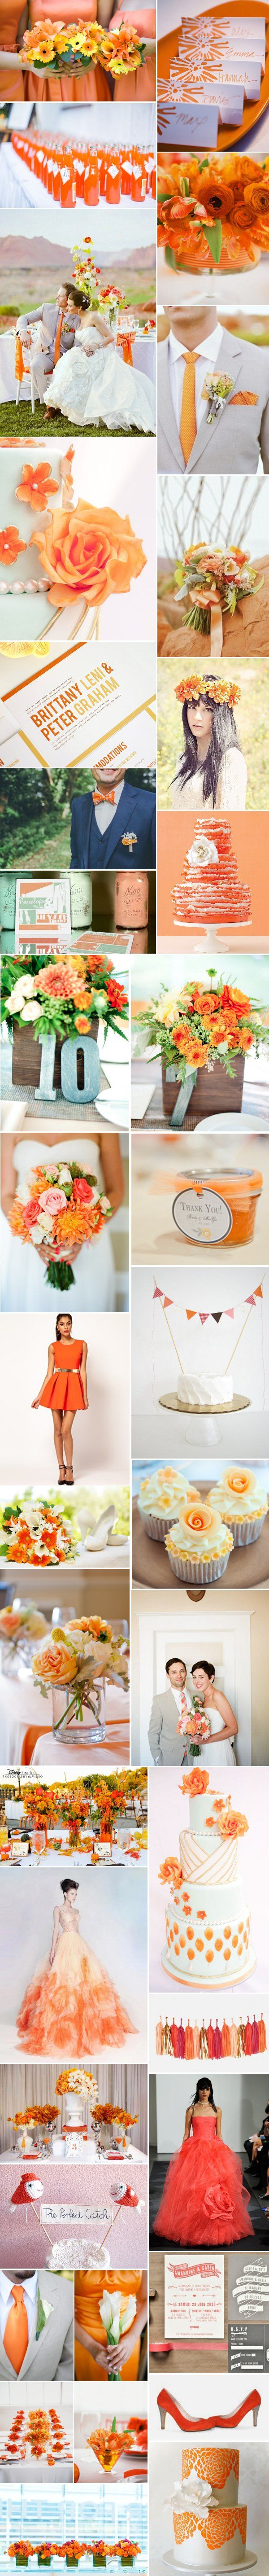 [Inspiration] Mariage orange                                                                                                                                                     Plus